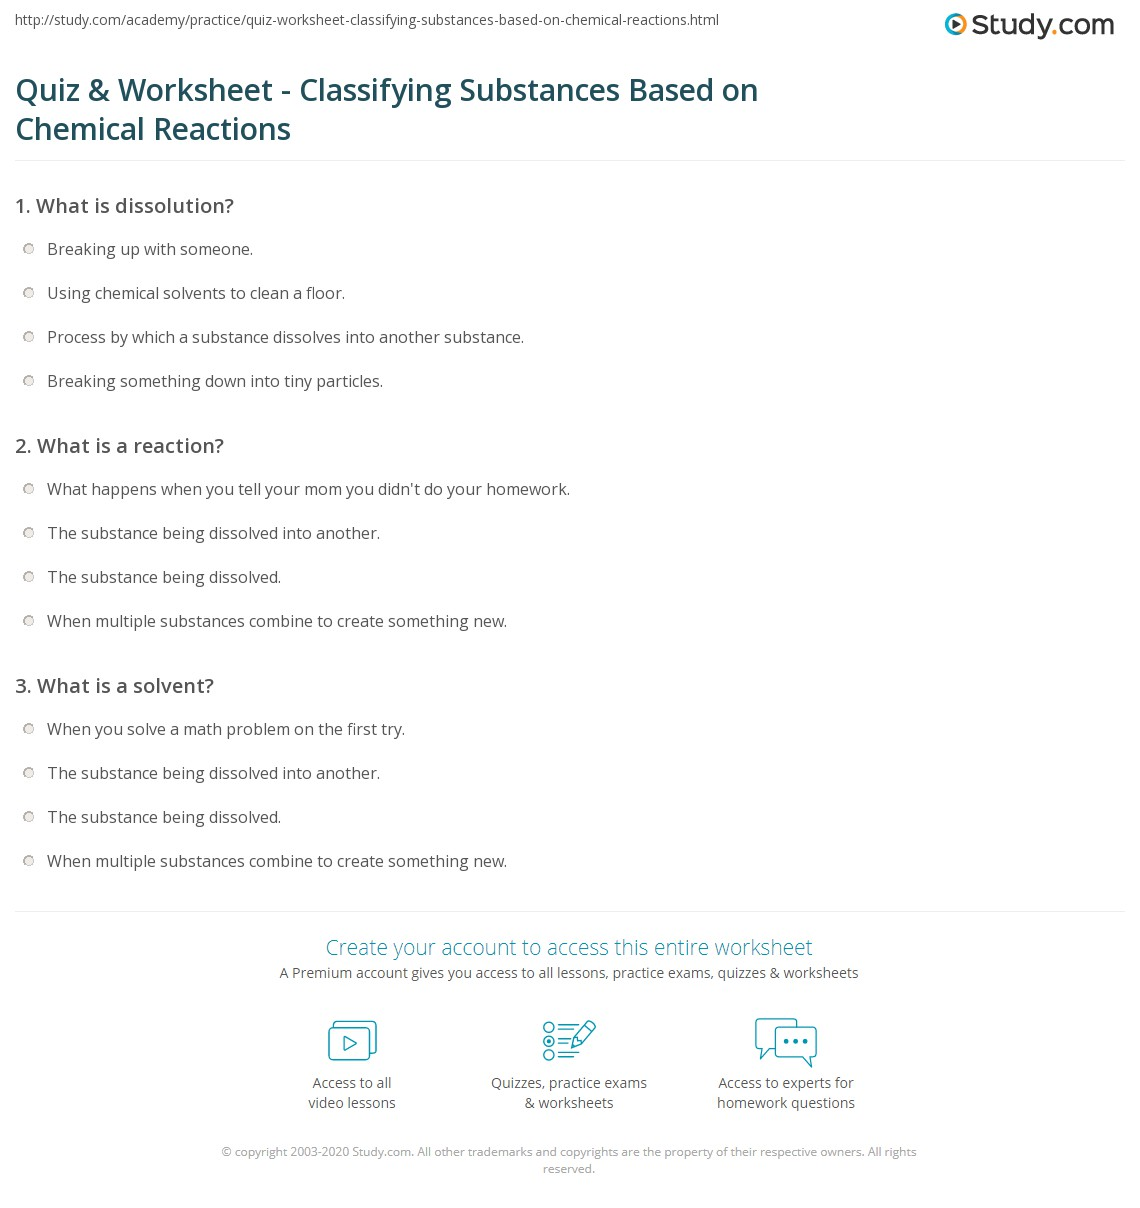 Printables Classifying Chemical Reactions Worksheet quiz worksheet classifying substances based on chemical print using reactions to identify worksheet